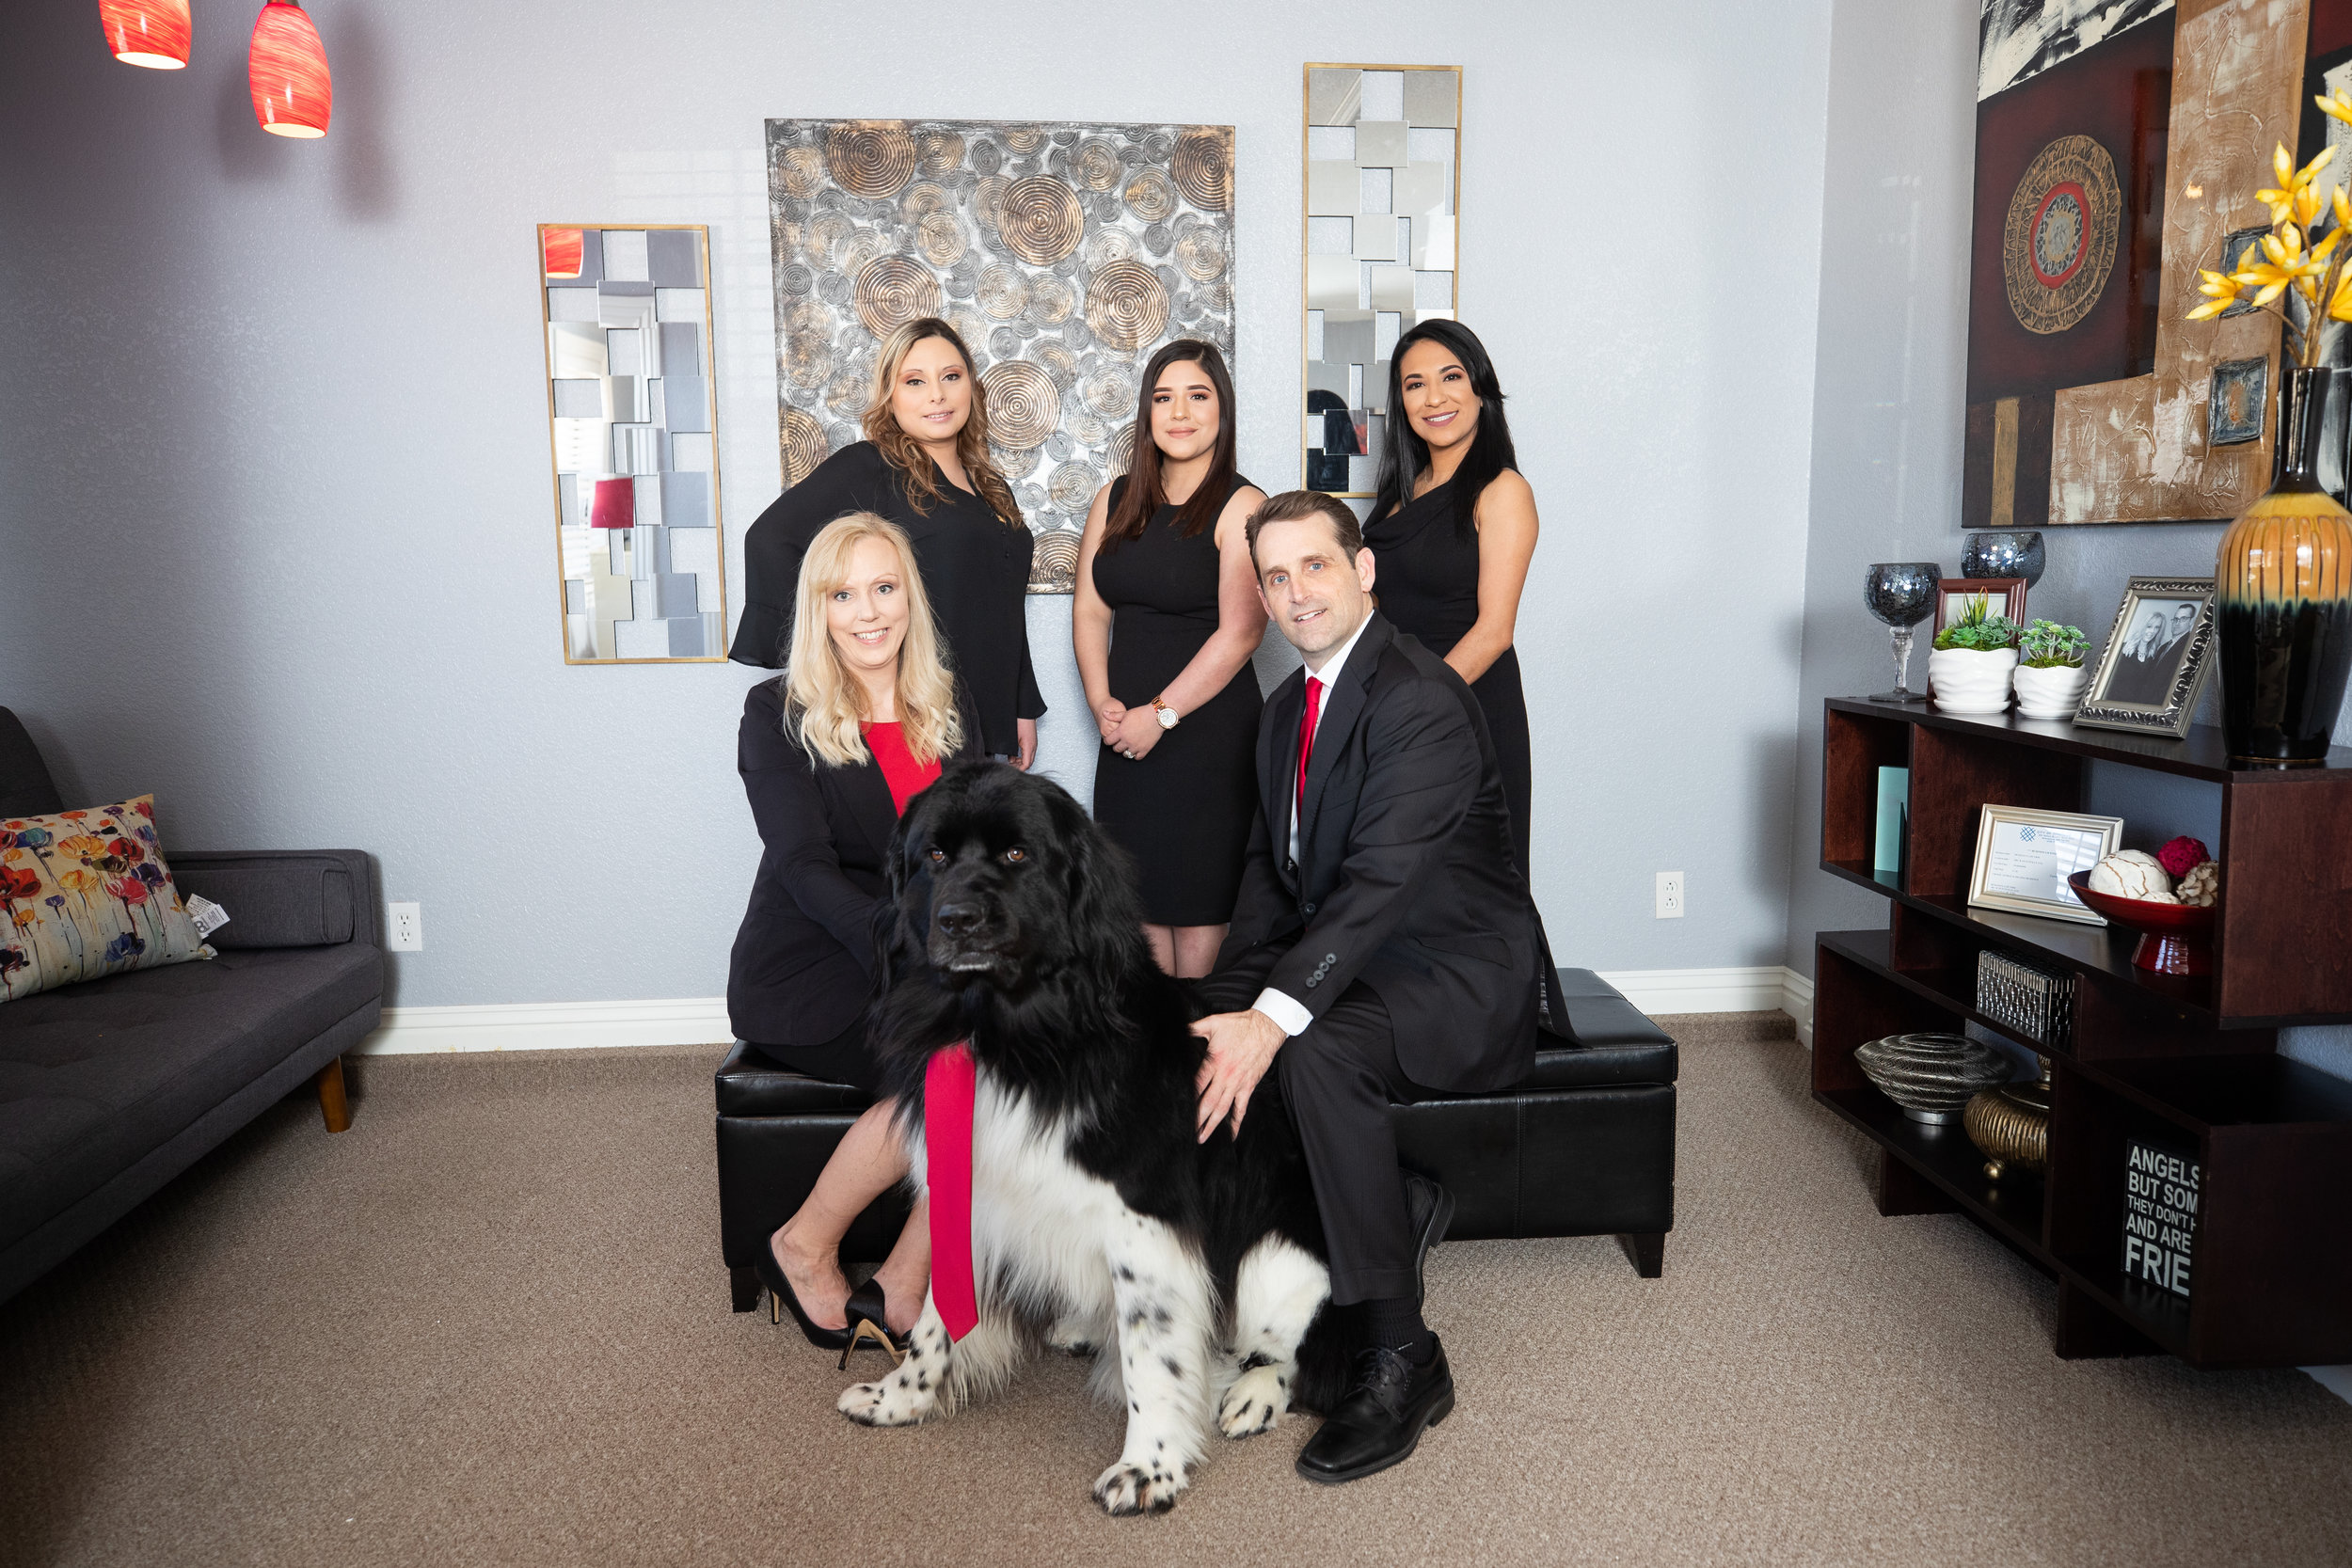 McManus Law Firm - Springdale Arkansas - 2019-37.jpg